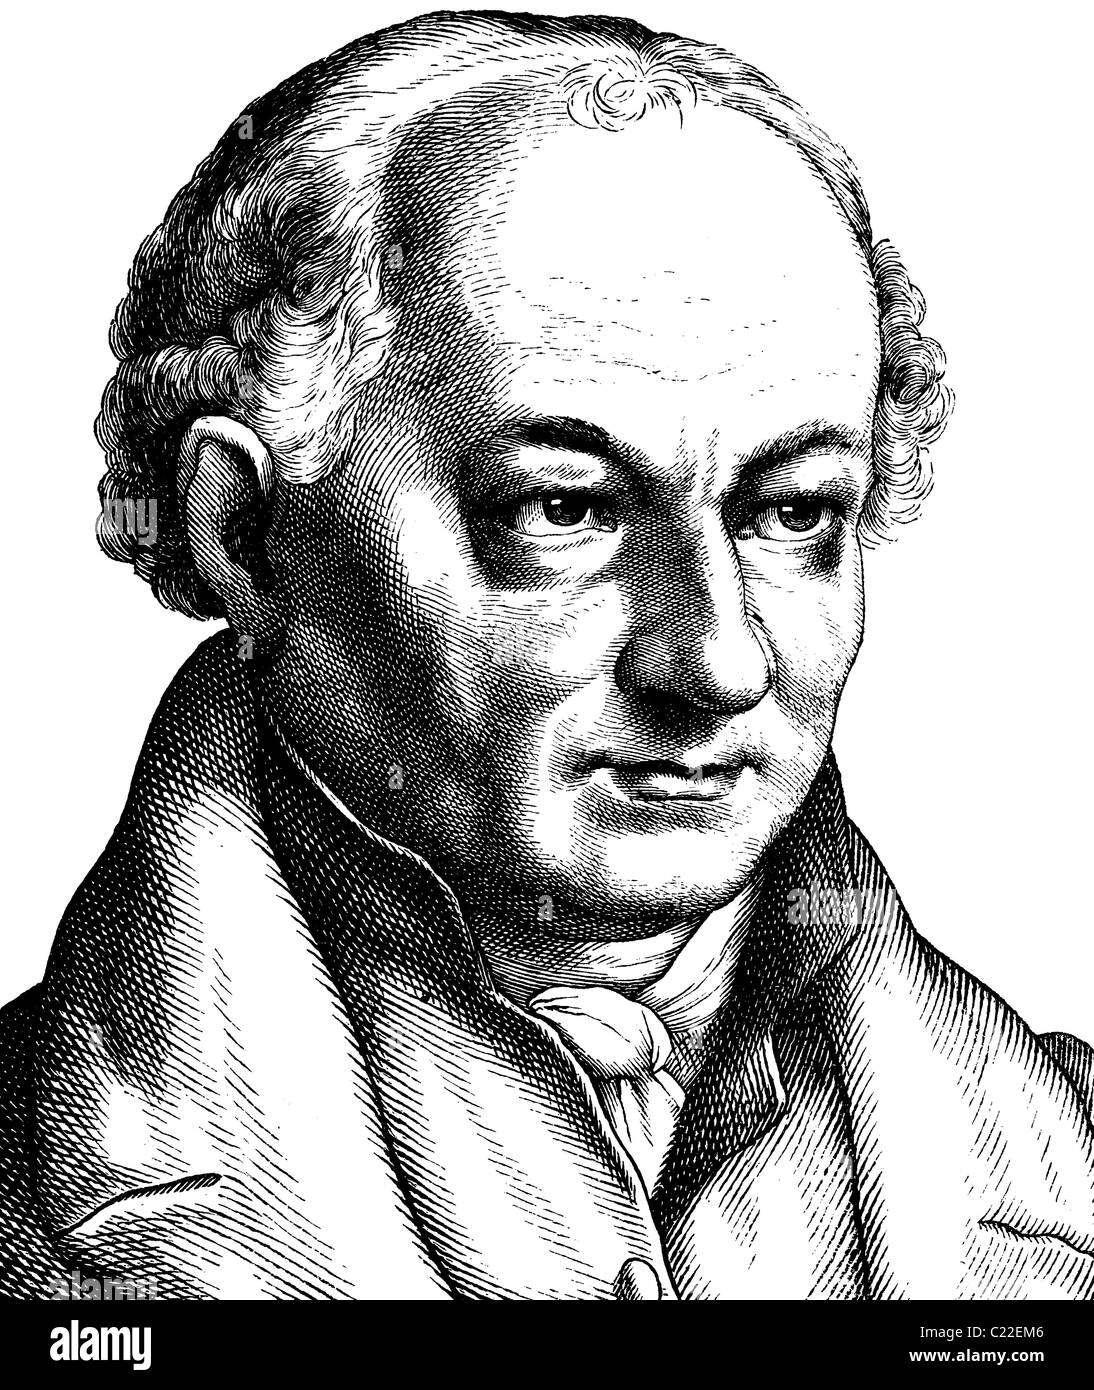 Digital improved image of Christoph Friedrich Perthes, 1772-1843, german book publisher - Stock Image